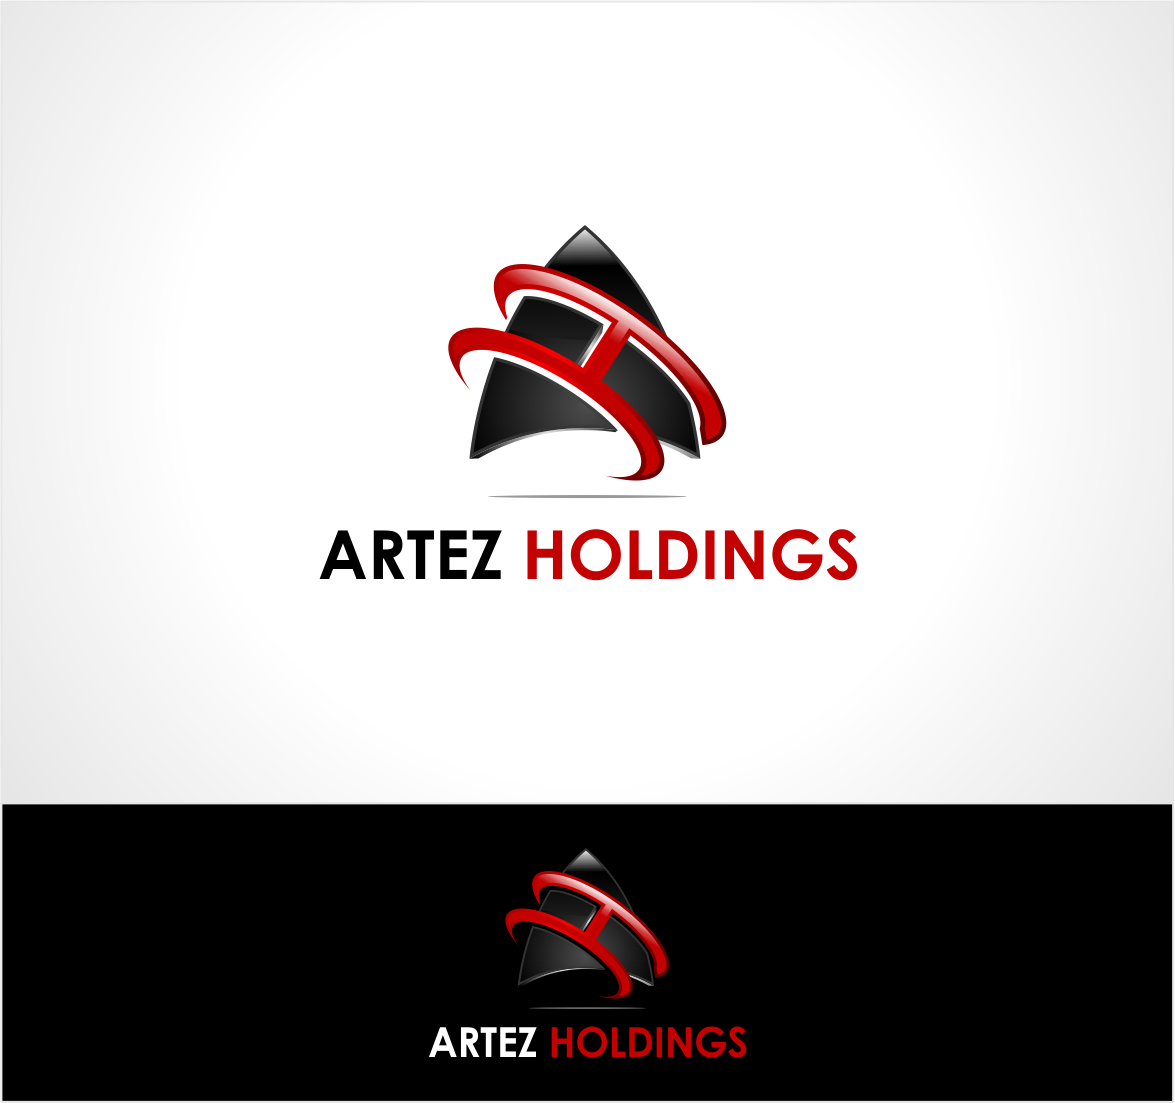 Logo Design by haidu - Entry No. 43 in the Logo Design Contest New Logo Design for Artez Holdings.